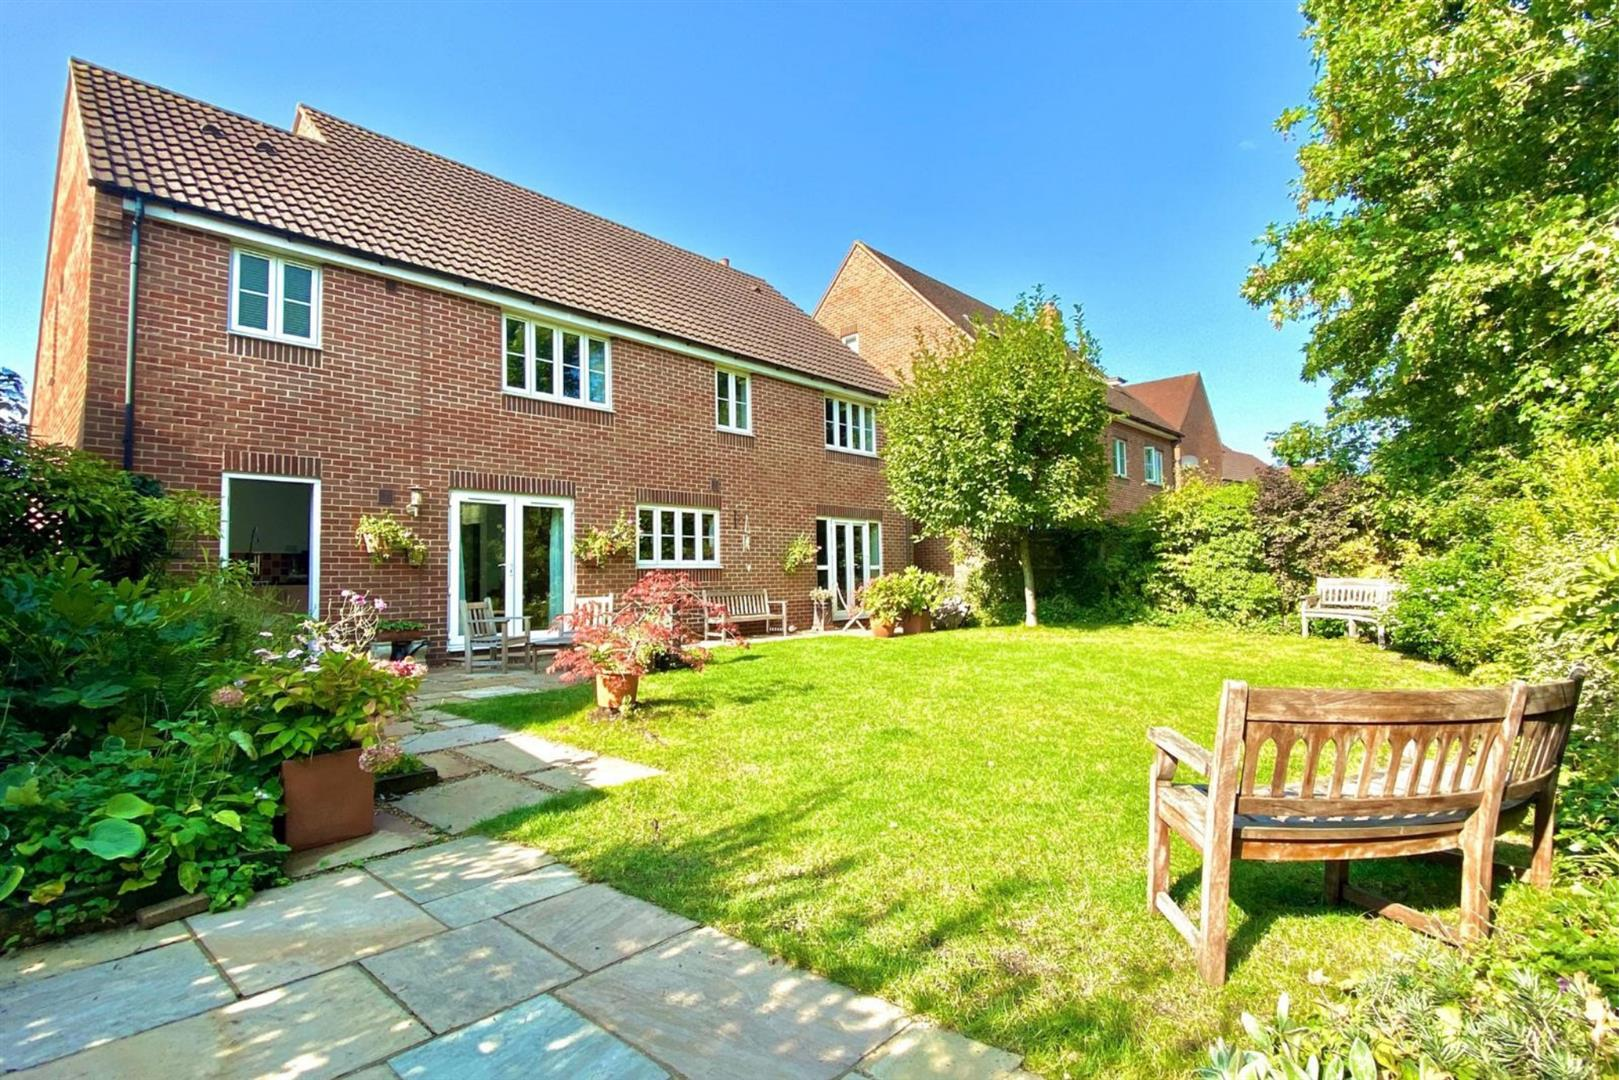 5 bed detached for sale in Shinfield  - Property Image 2